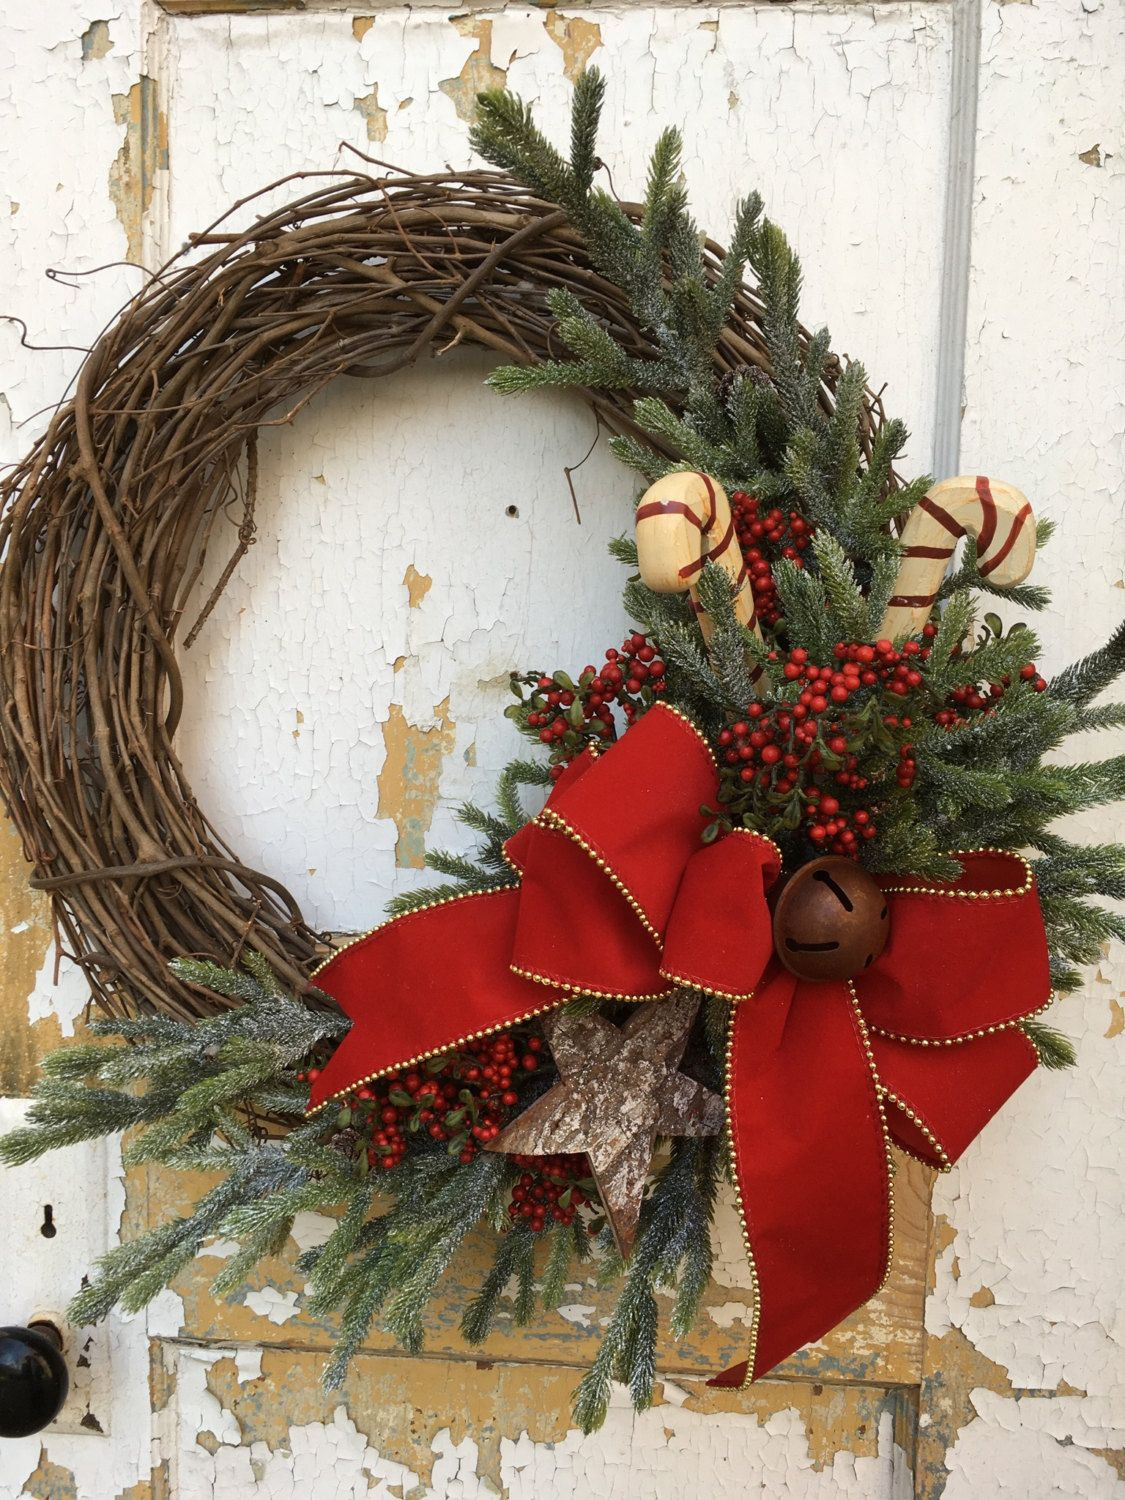 rustic christmas wreath for front door candy cane wreath etsy wreath by flowerpowerohio on etsy - Christmas Wreaths Etsy